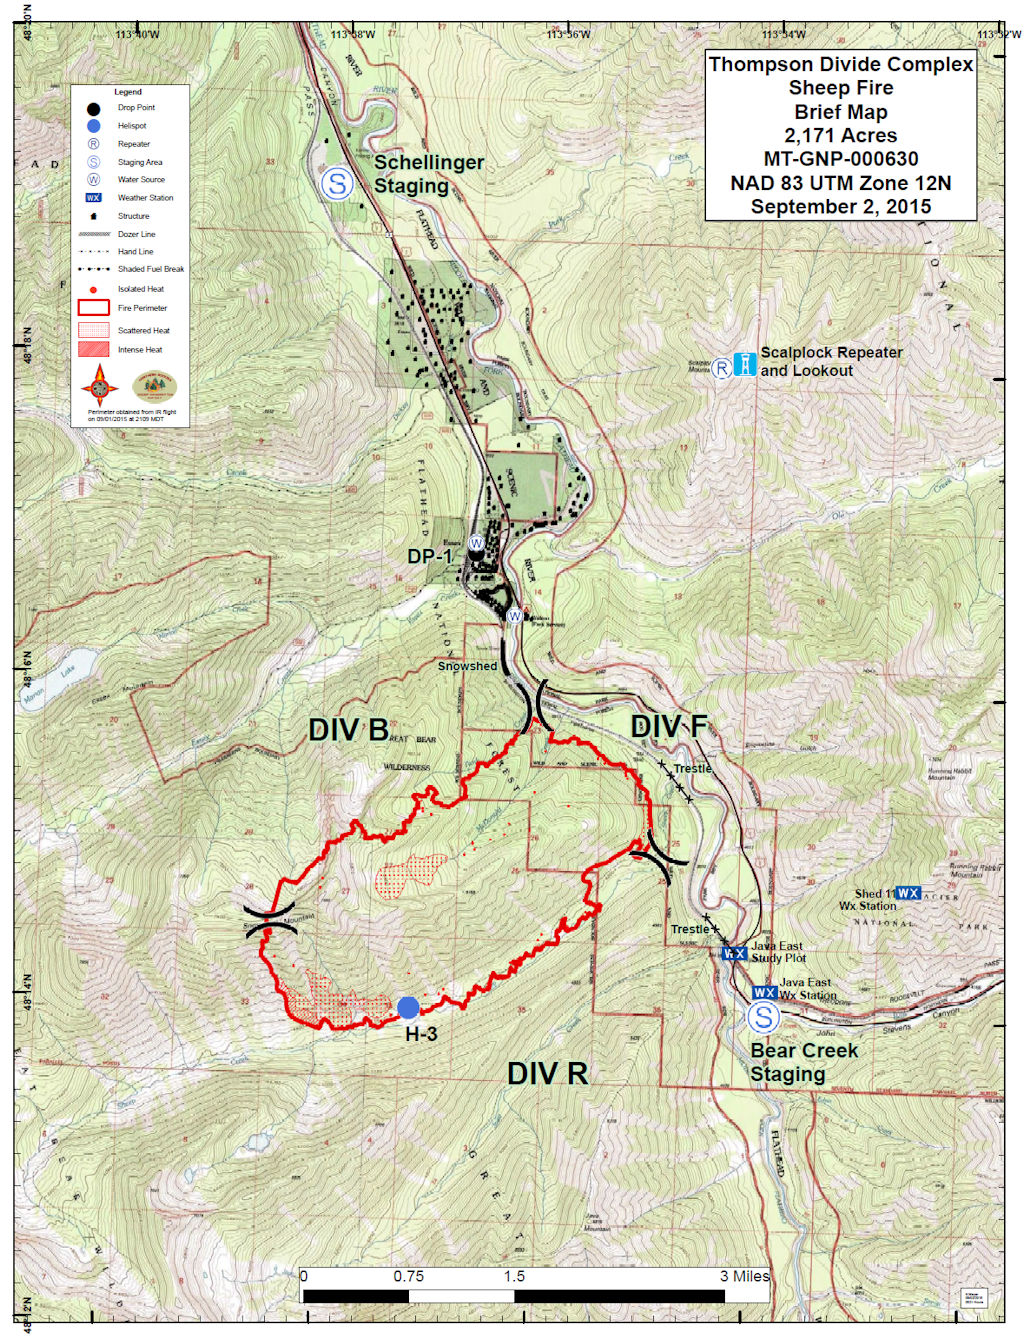 Sheep Fire Perimeter Map, Sep 2, 2015